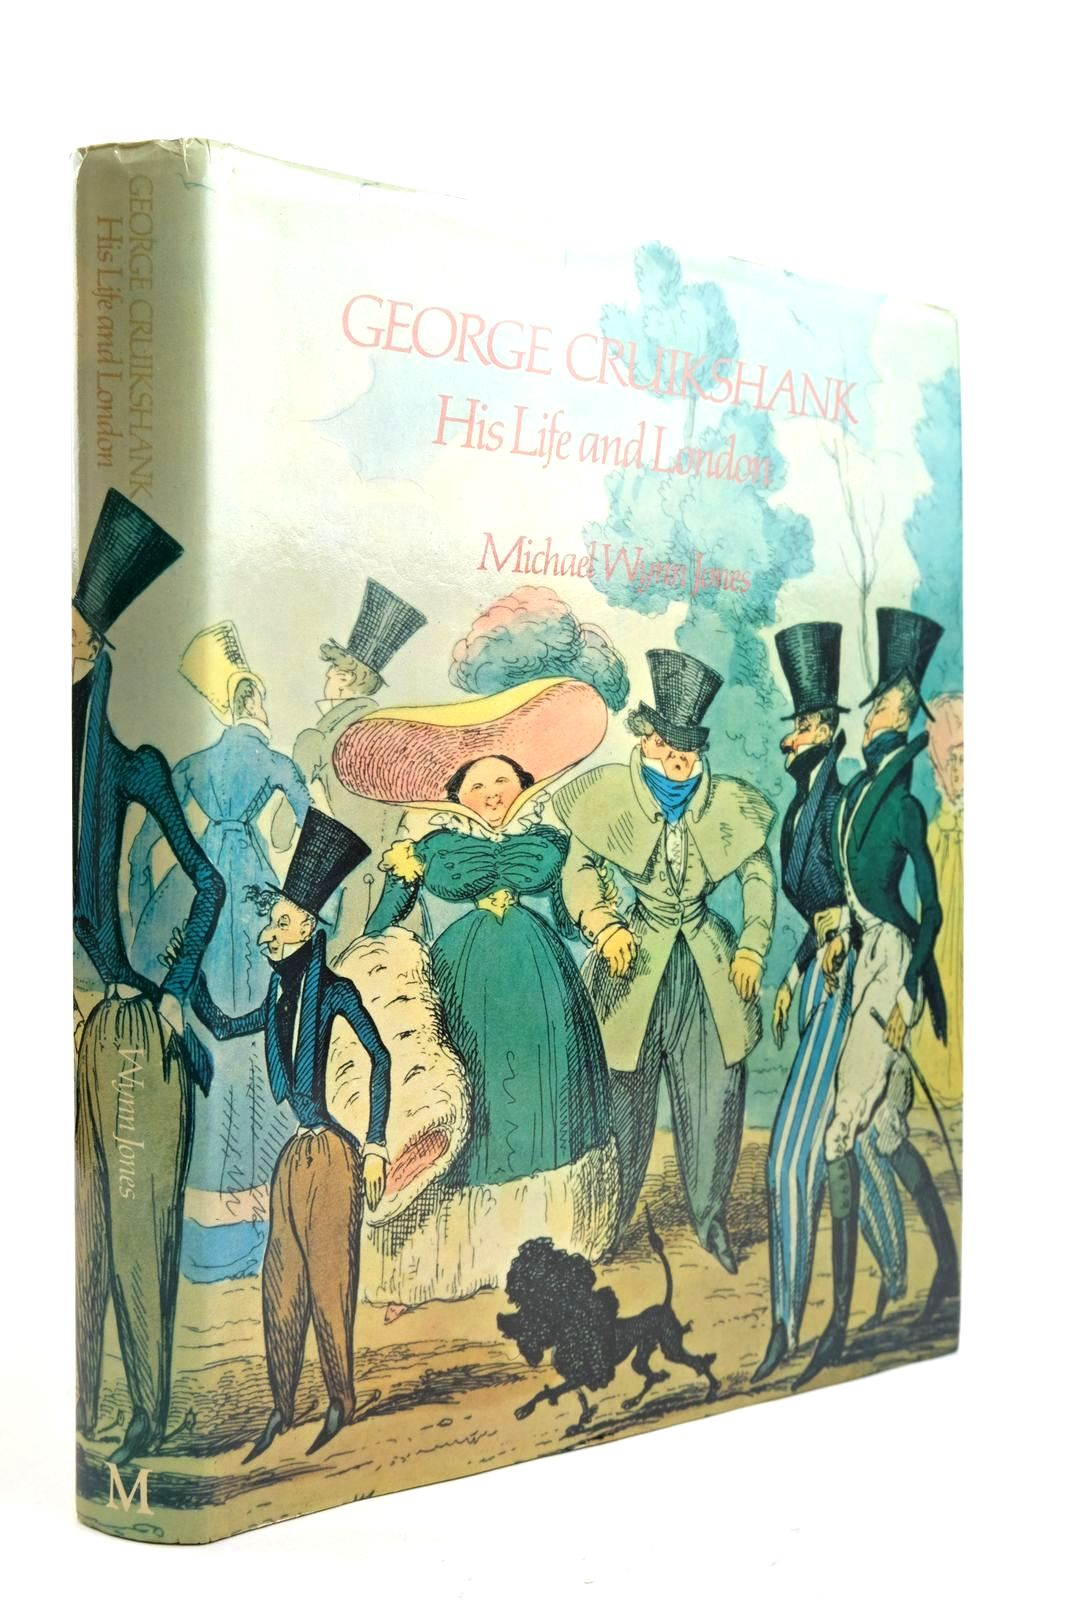 Photo of GEORGE CRUIKSHANK HIS LIFE AND LONDON- Stock Number: 2132890